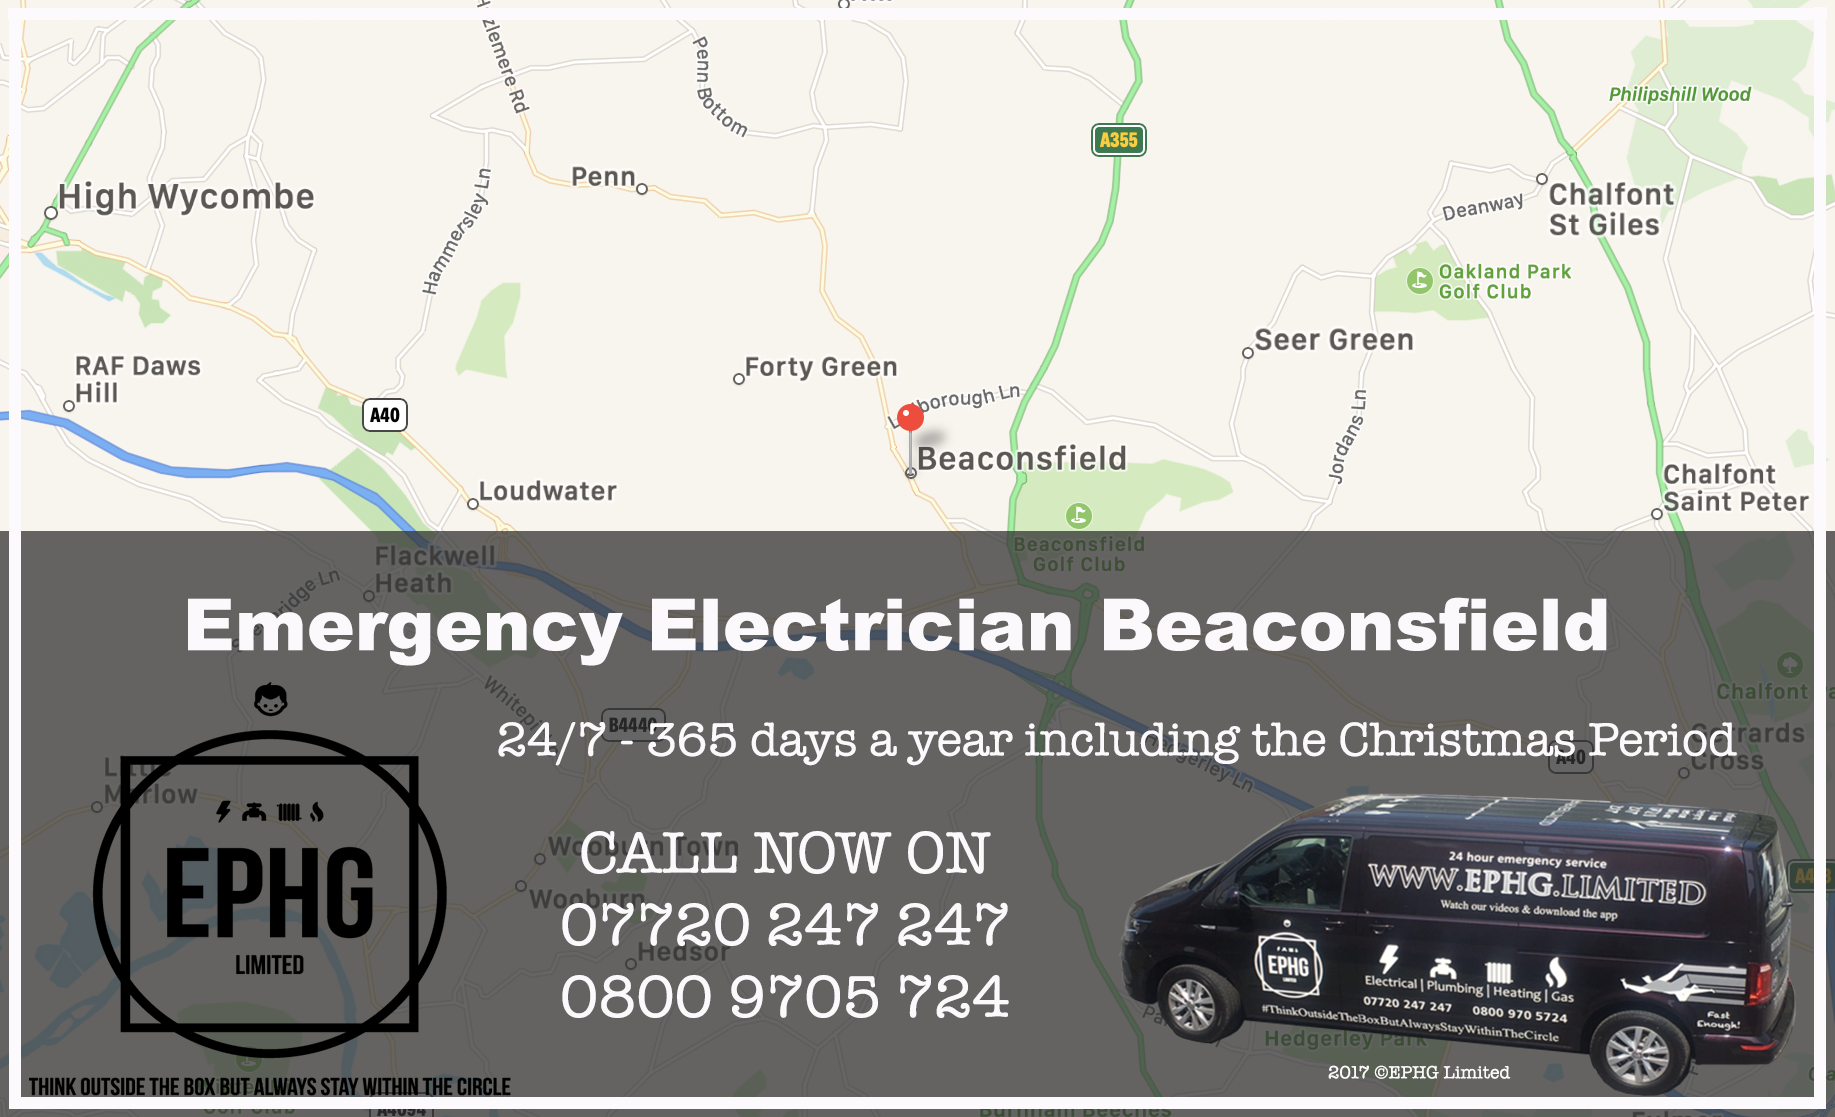 Emergency Electrician Beaconsfield